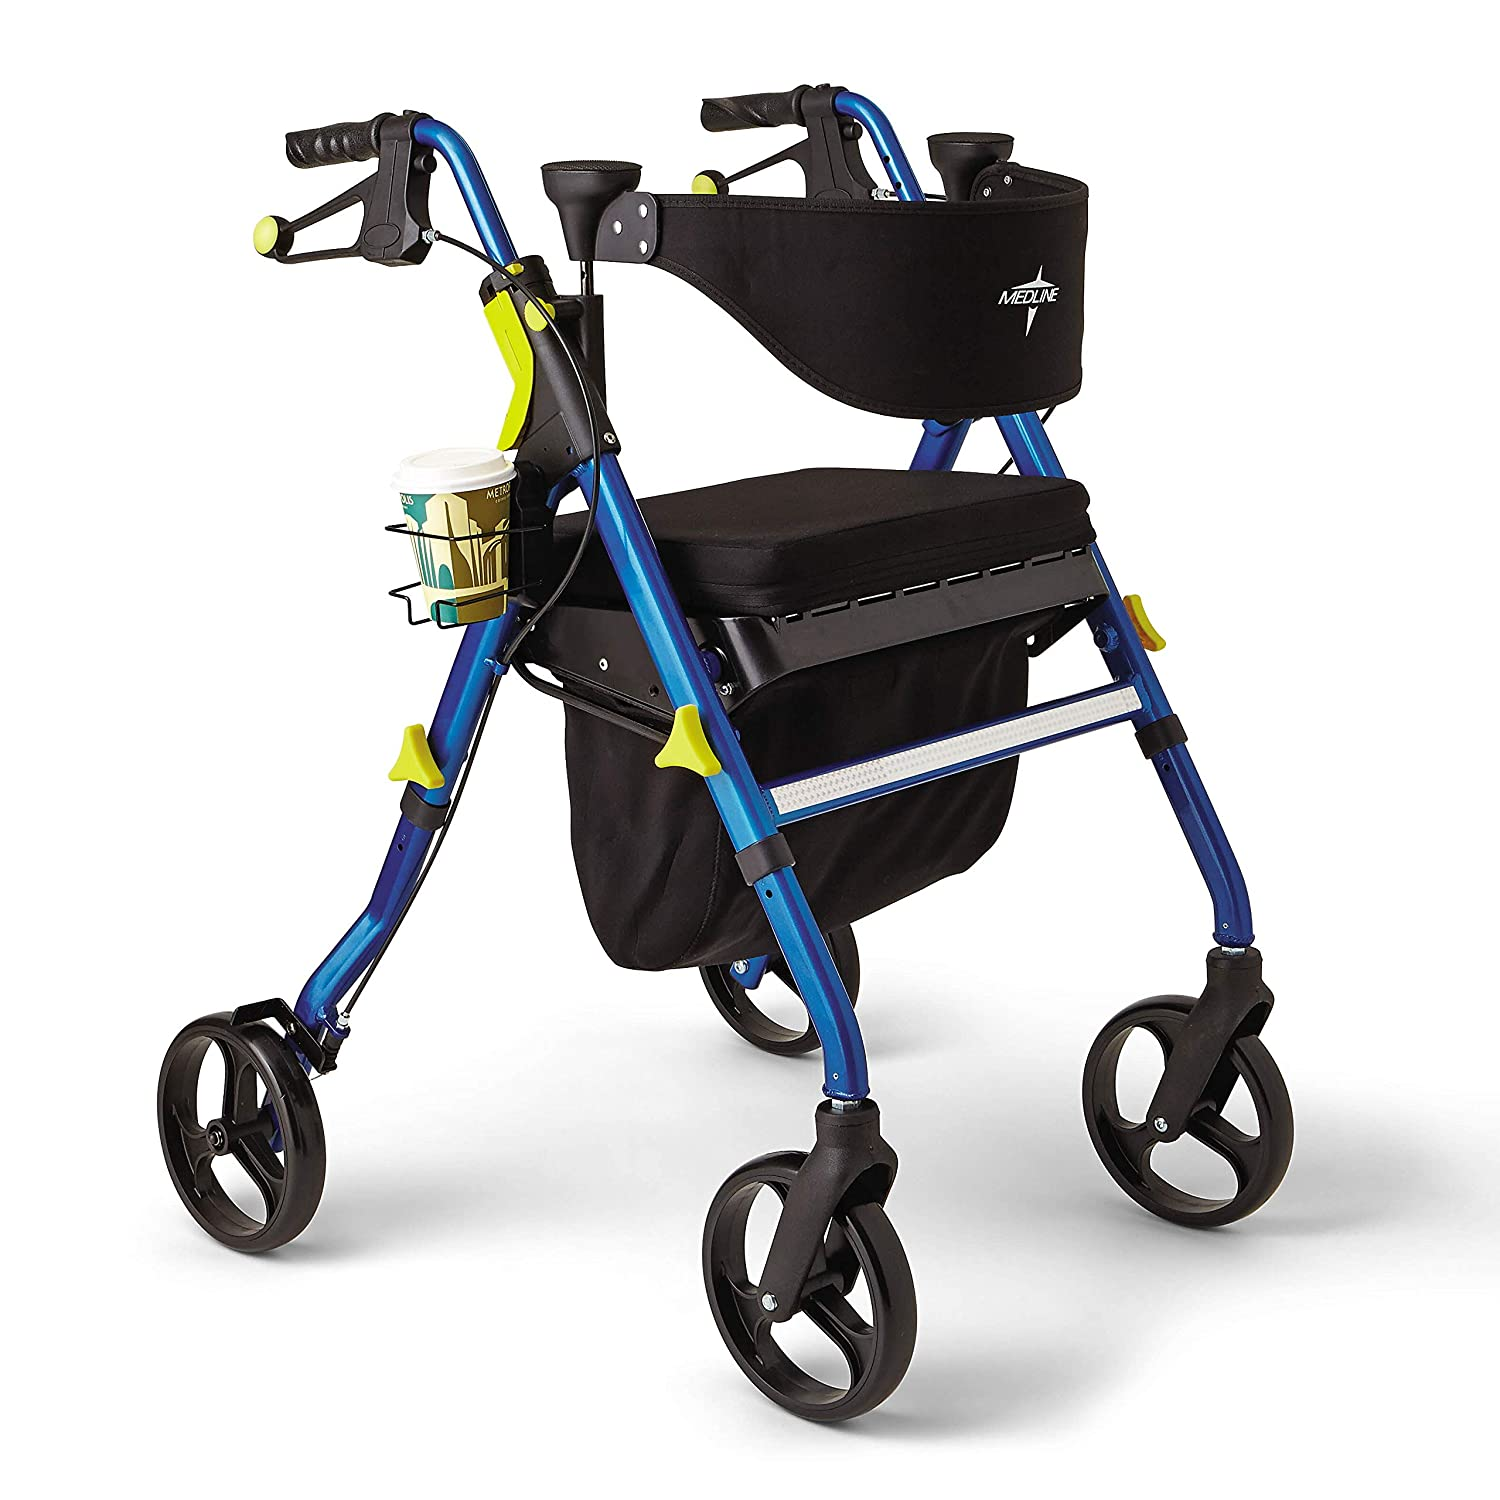 Medline Premium Empower Rollator Walker with Seat, Folding Rolling Walker  with 8-inch Wheels, Blue